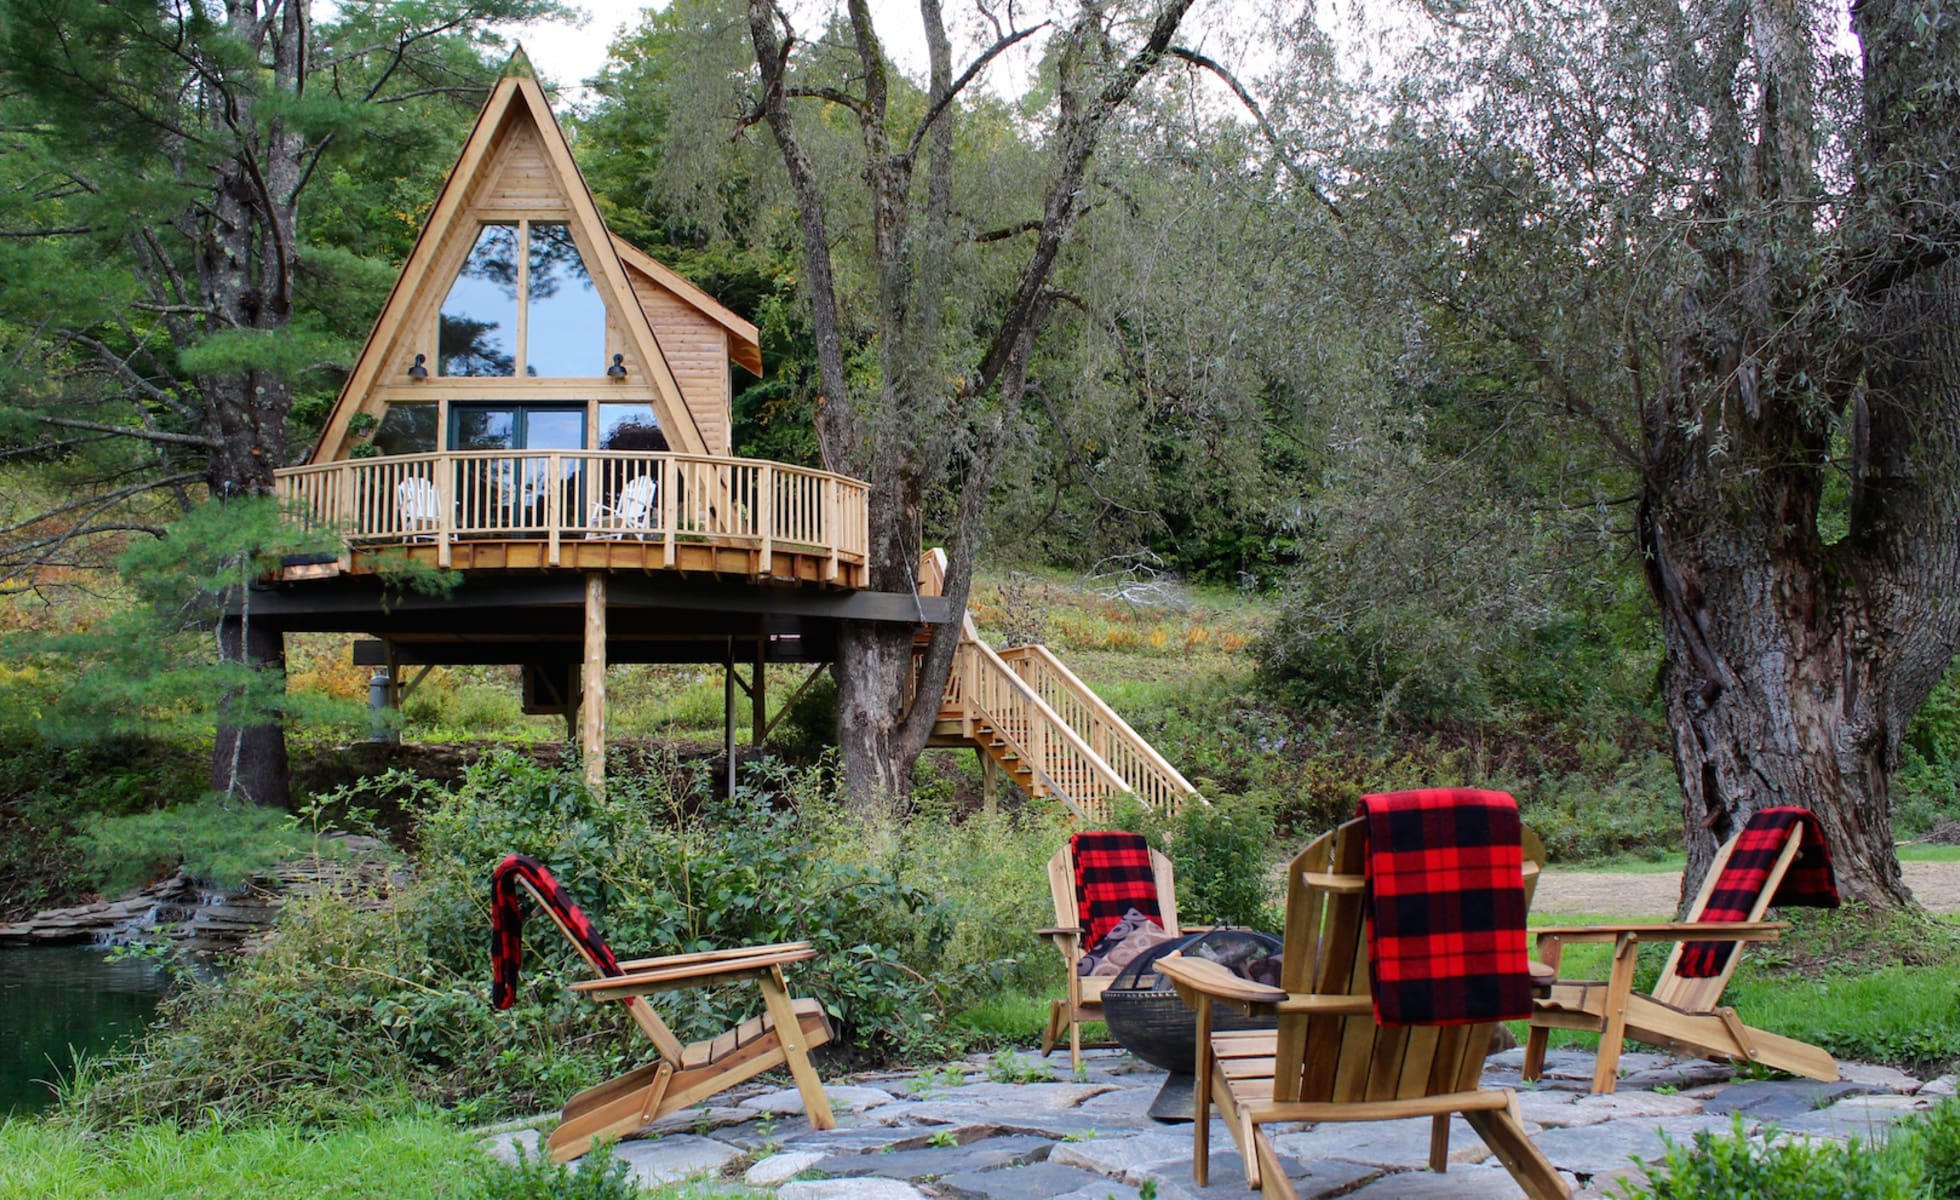 Private fire pit and treehouse